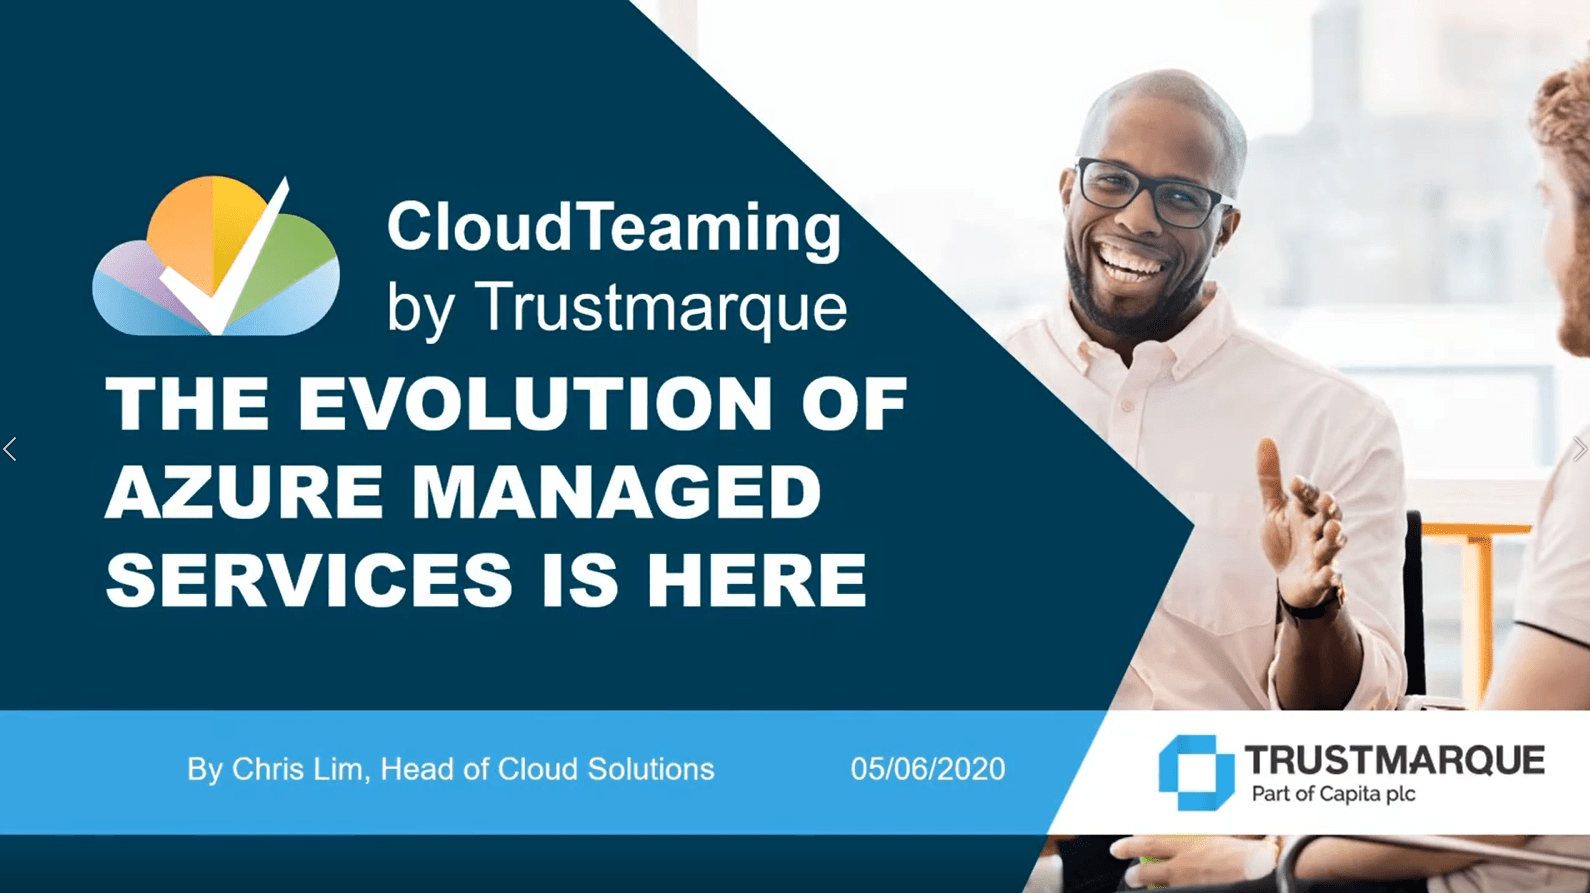 CloudTeaming by Trustmarque